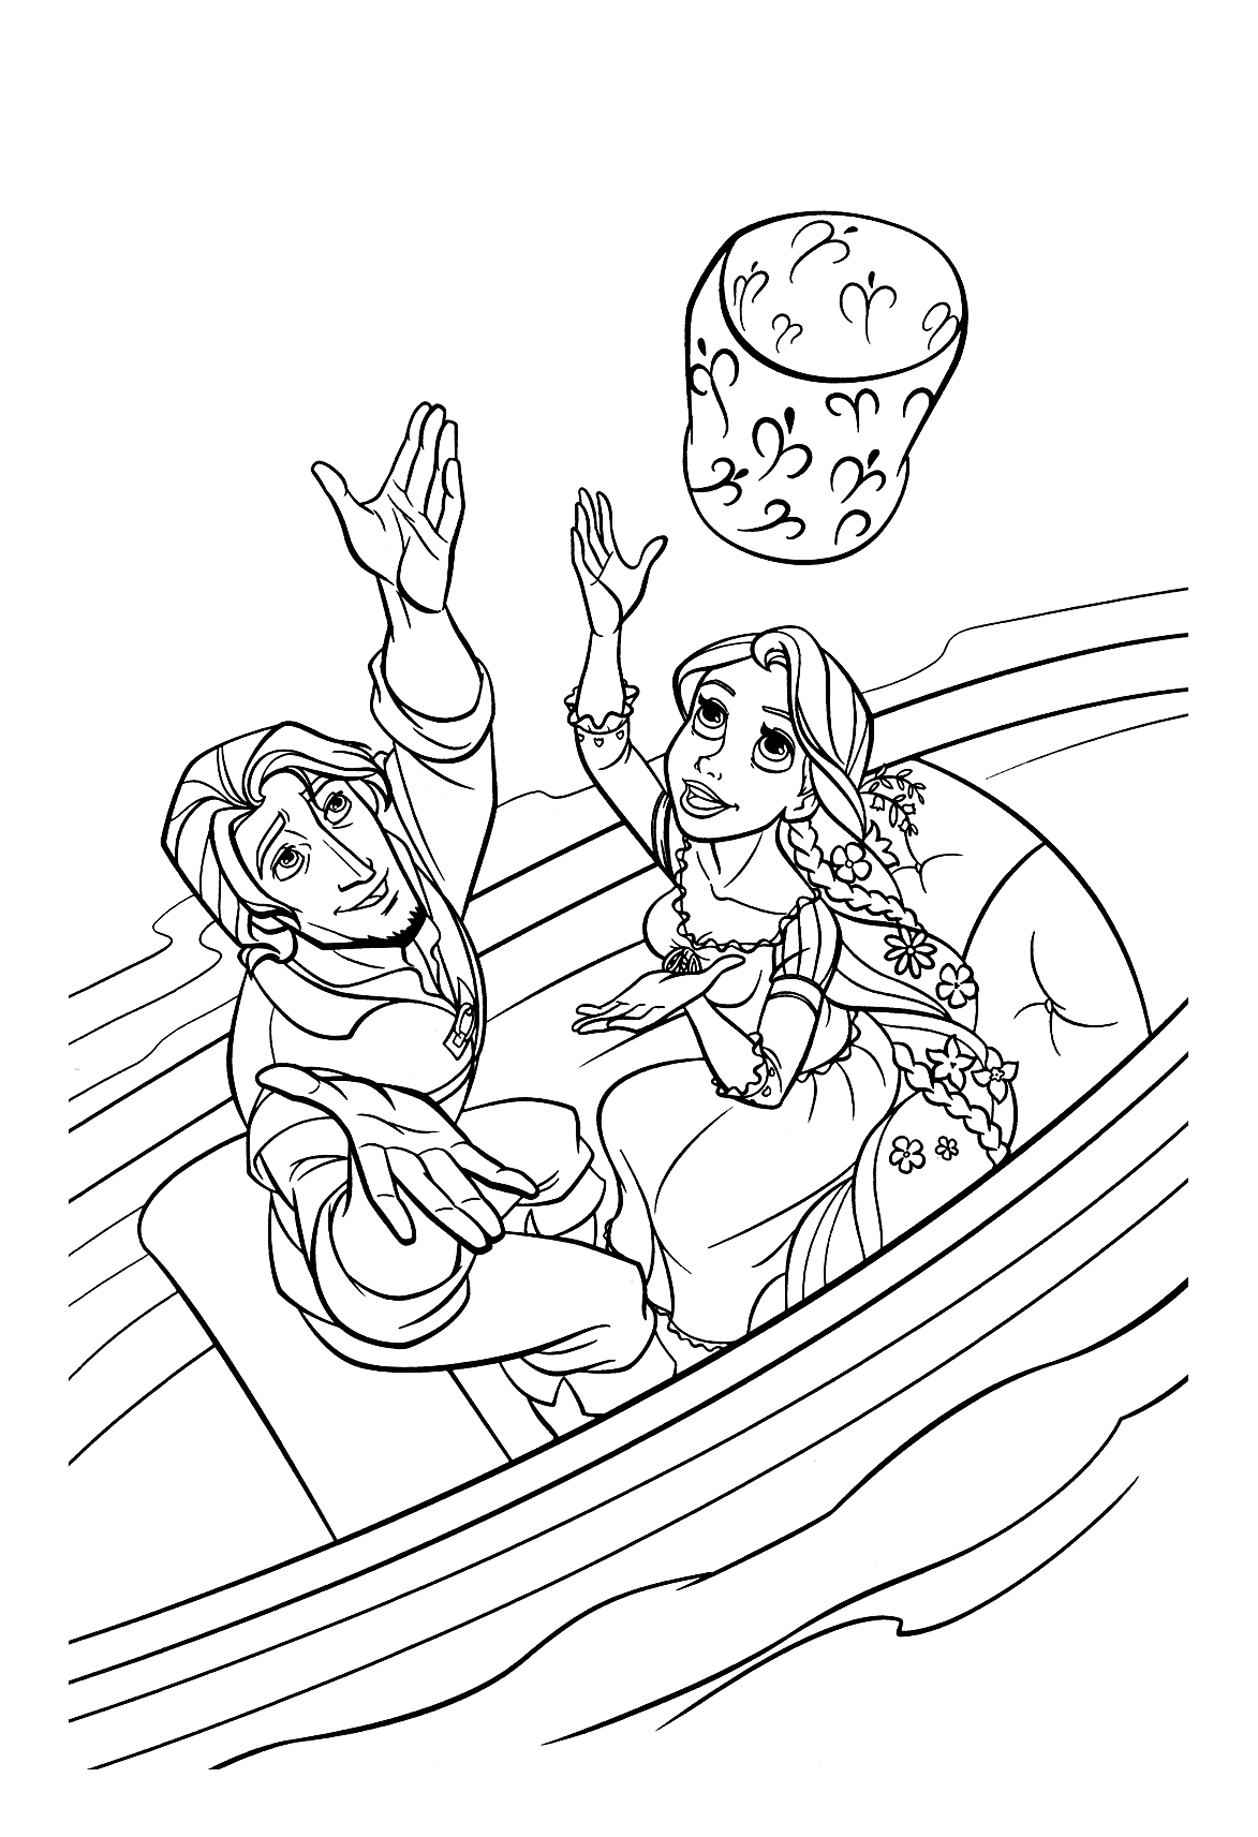 Rapunzel and Flynn release a lantern Coloring Page